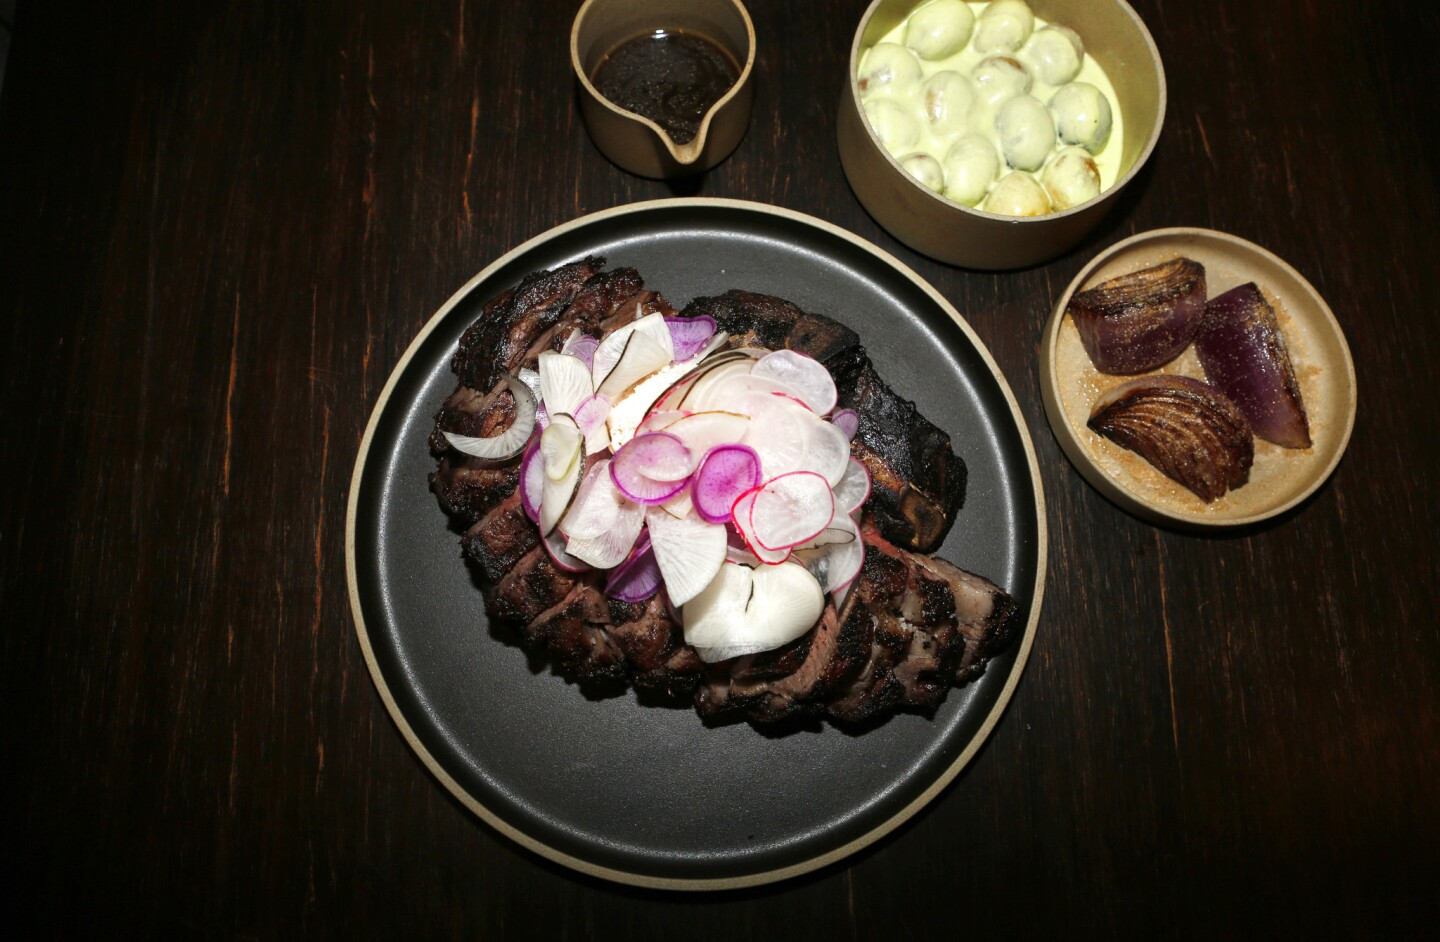 The Holstein rib-eye at the Koreatown restaurant Here's Looking at You is a wonderful piece of meat, dry-aged for 30 days and enhanced with melted radish butter.